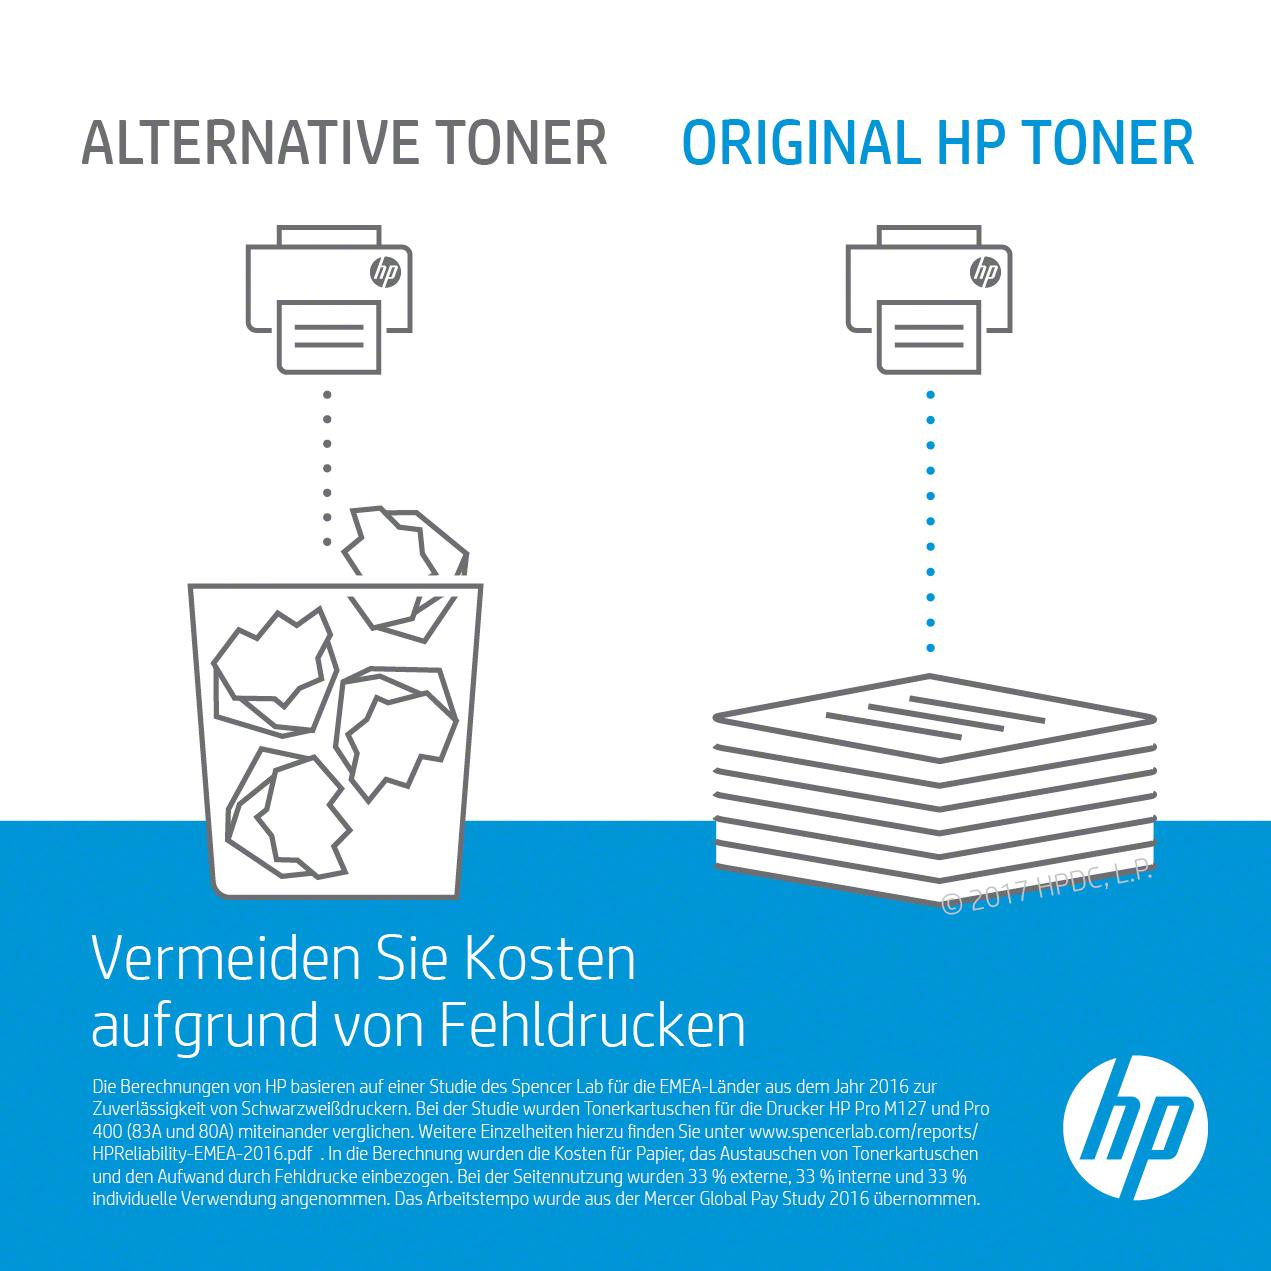 HP Color LaserJet CP5525 Toner Collection Unit - 150K